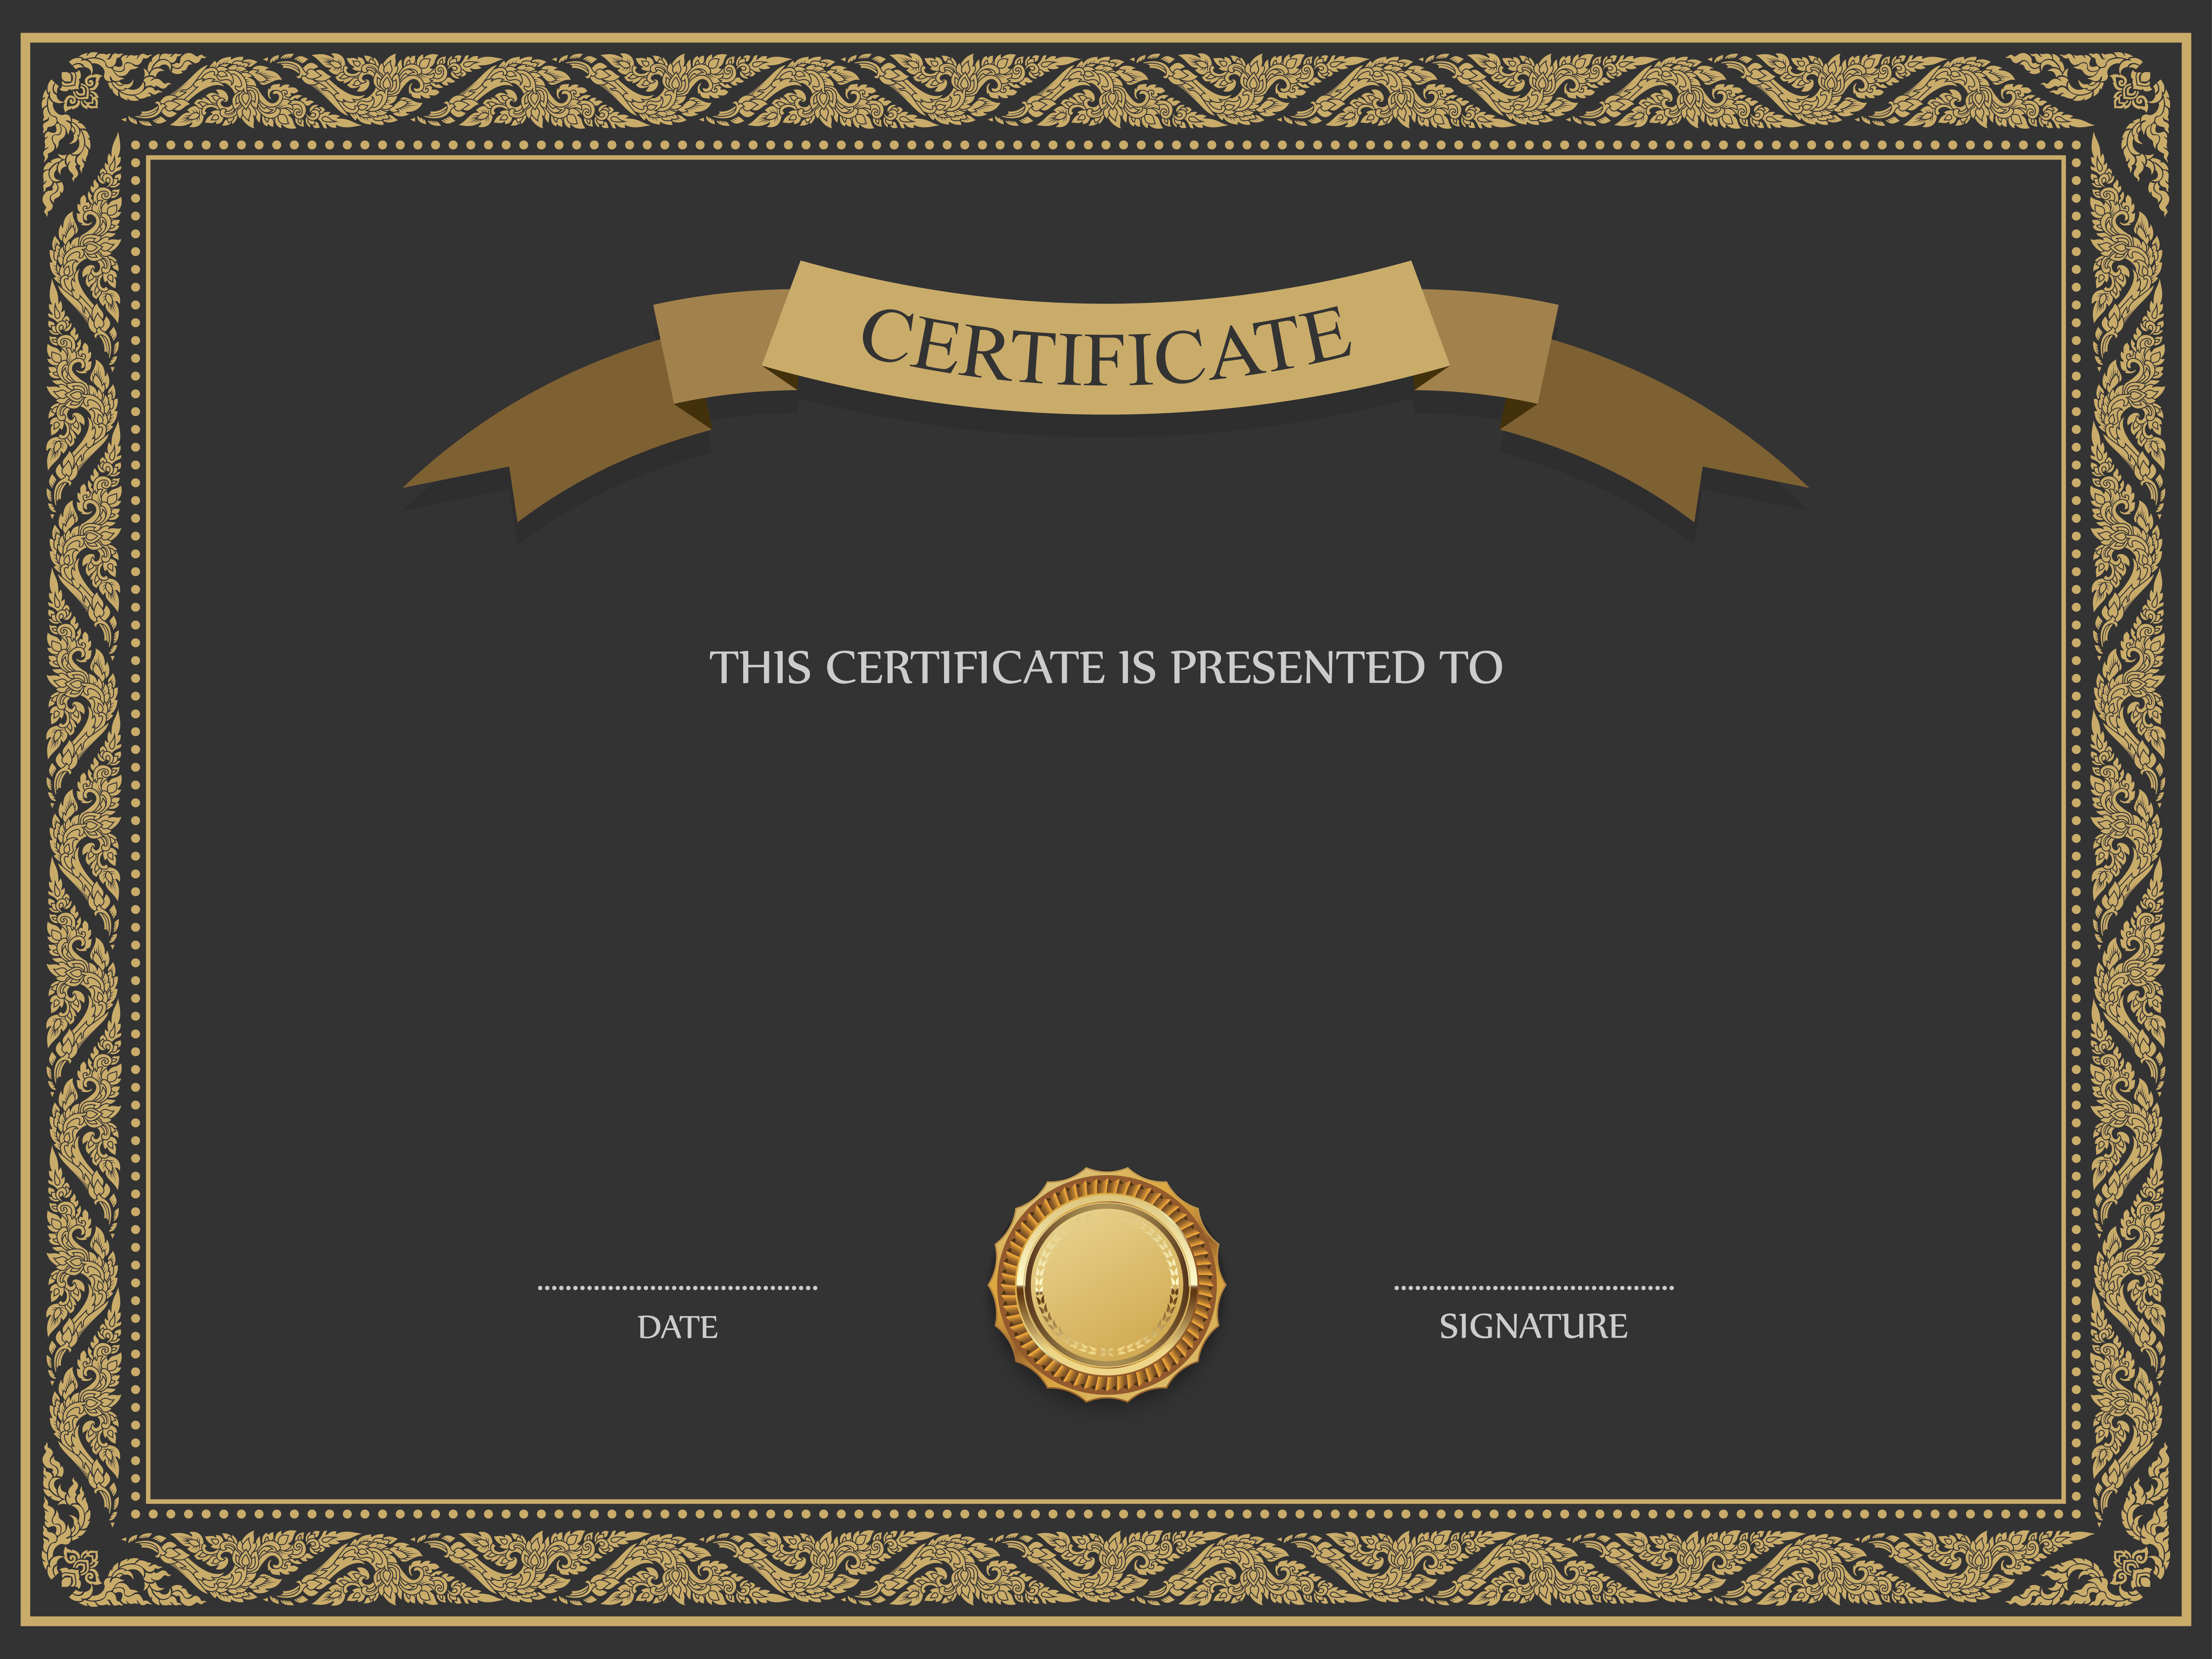 Black and Brown Certificate Template PNG Image | смам | Pinterest ...